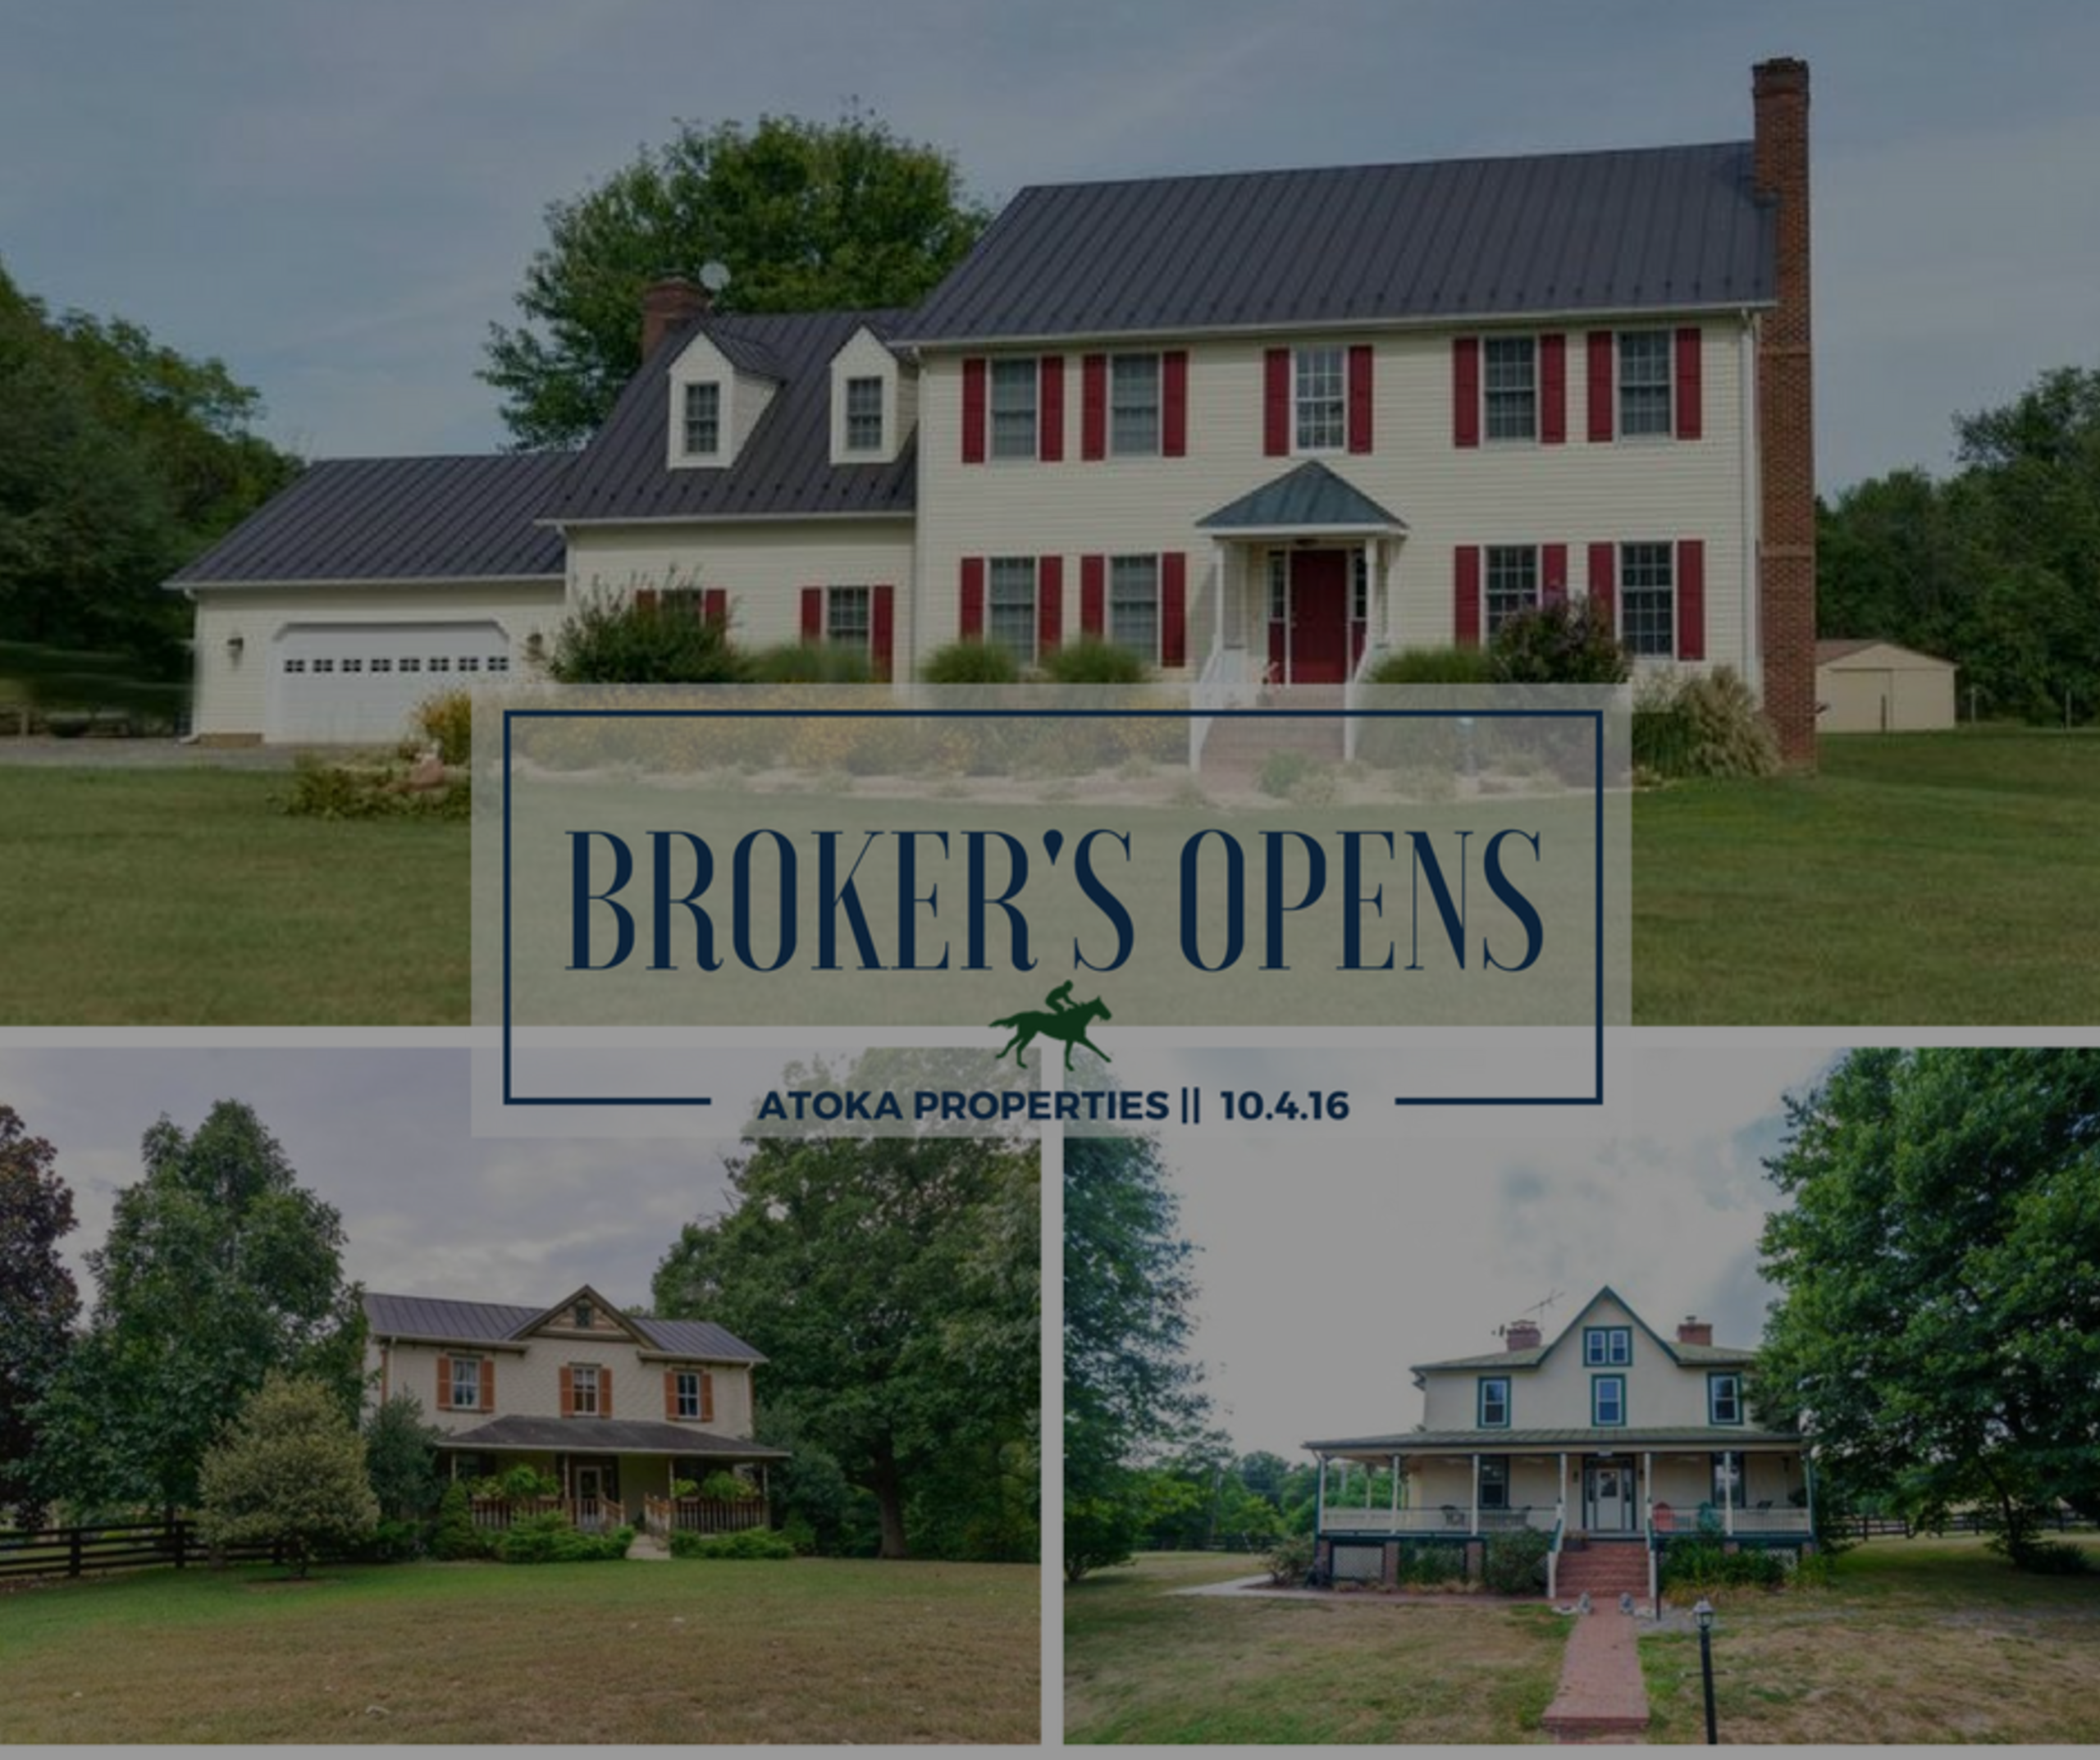 Broker's Opens: 3 Property Tour | 10.4.16